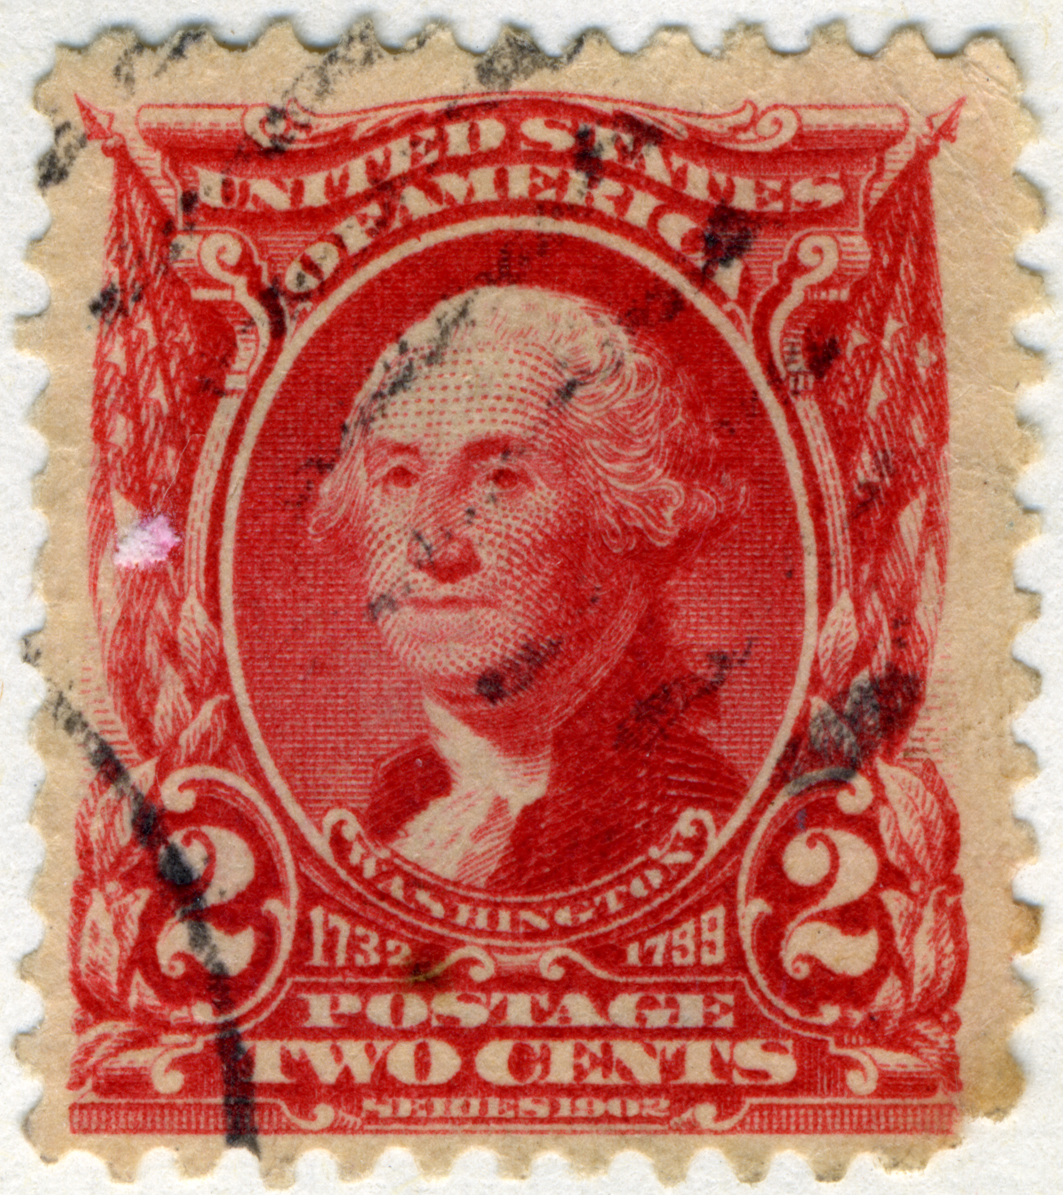 US_stamp_1902_2c_Washington.jpg